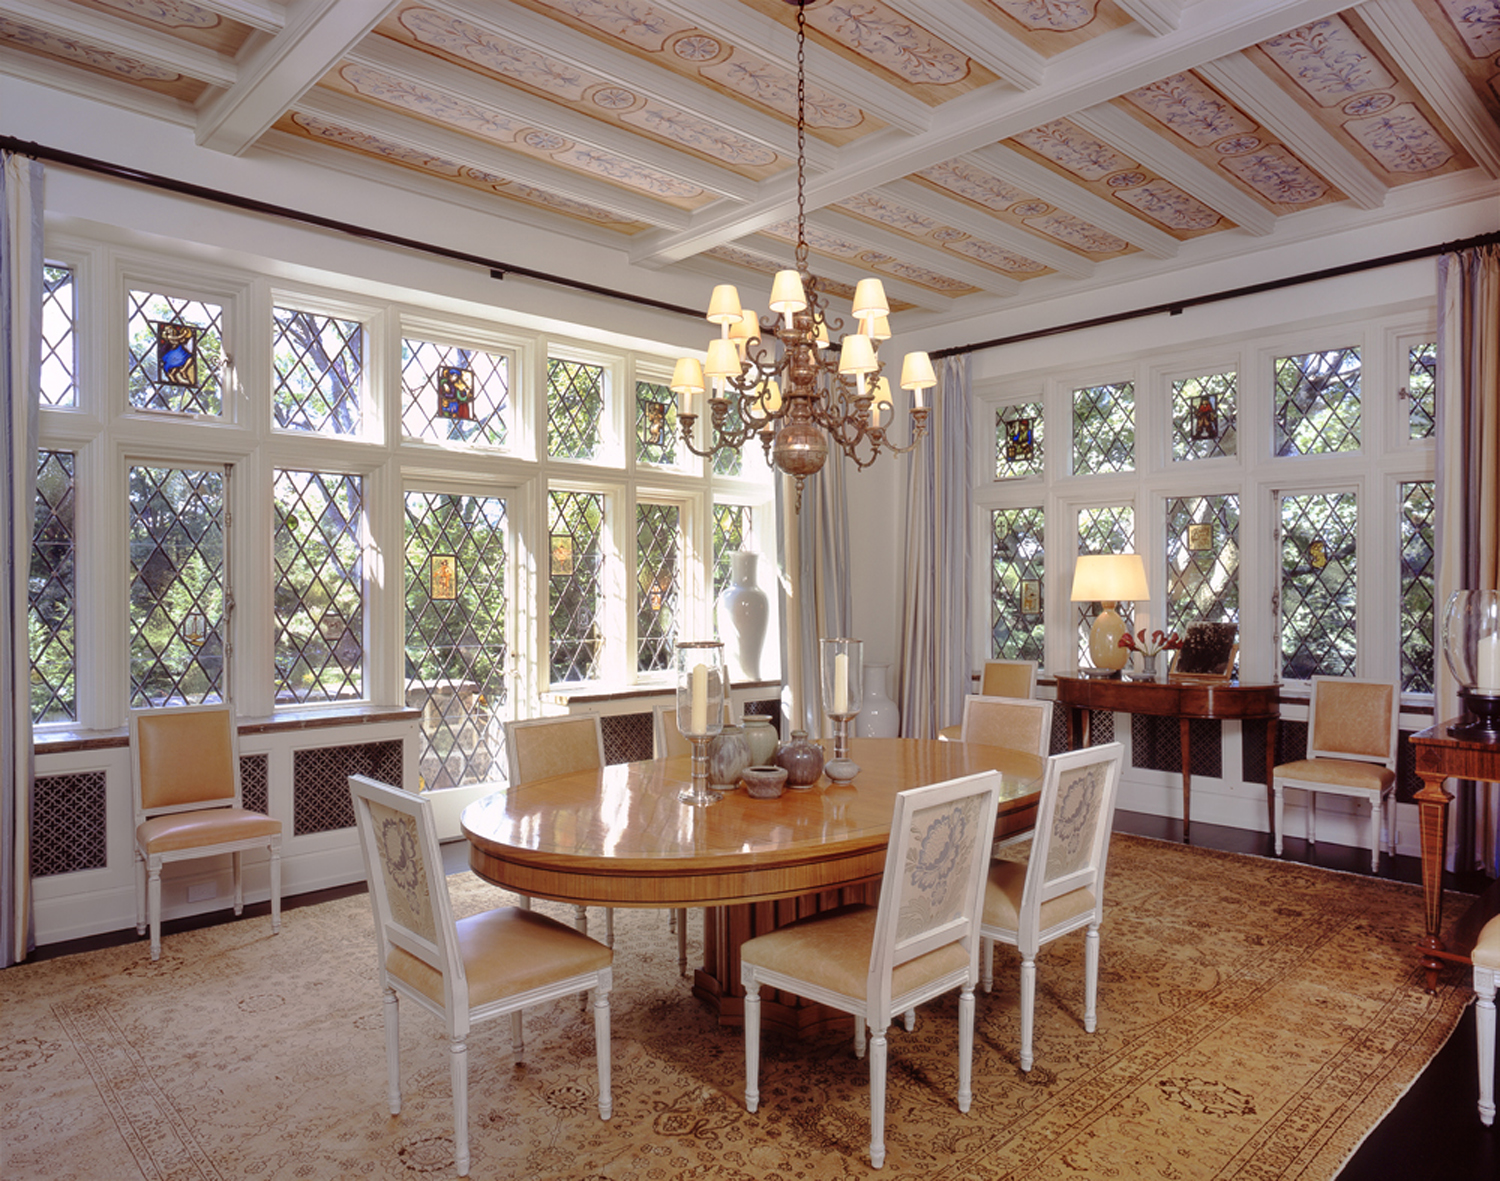 Historic-renovation-dining-coffered-ceiling-bronxville-ny-interior-w.jpg